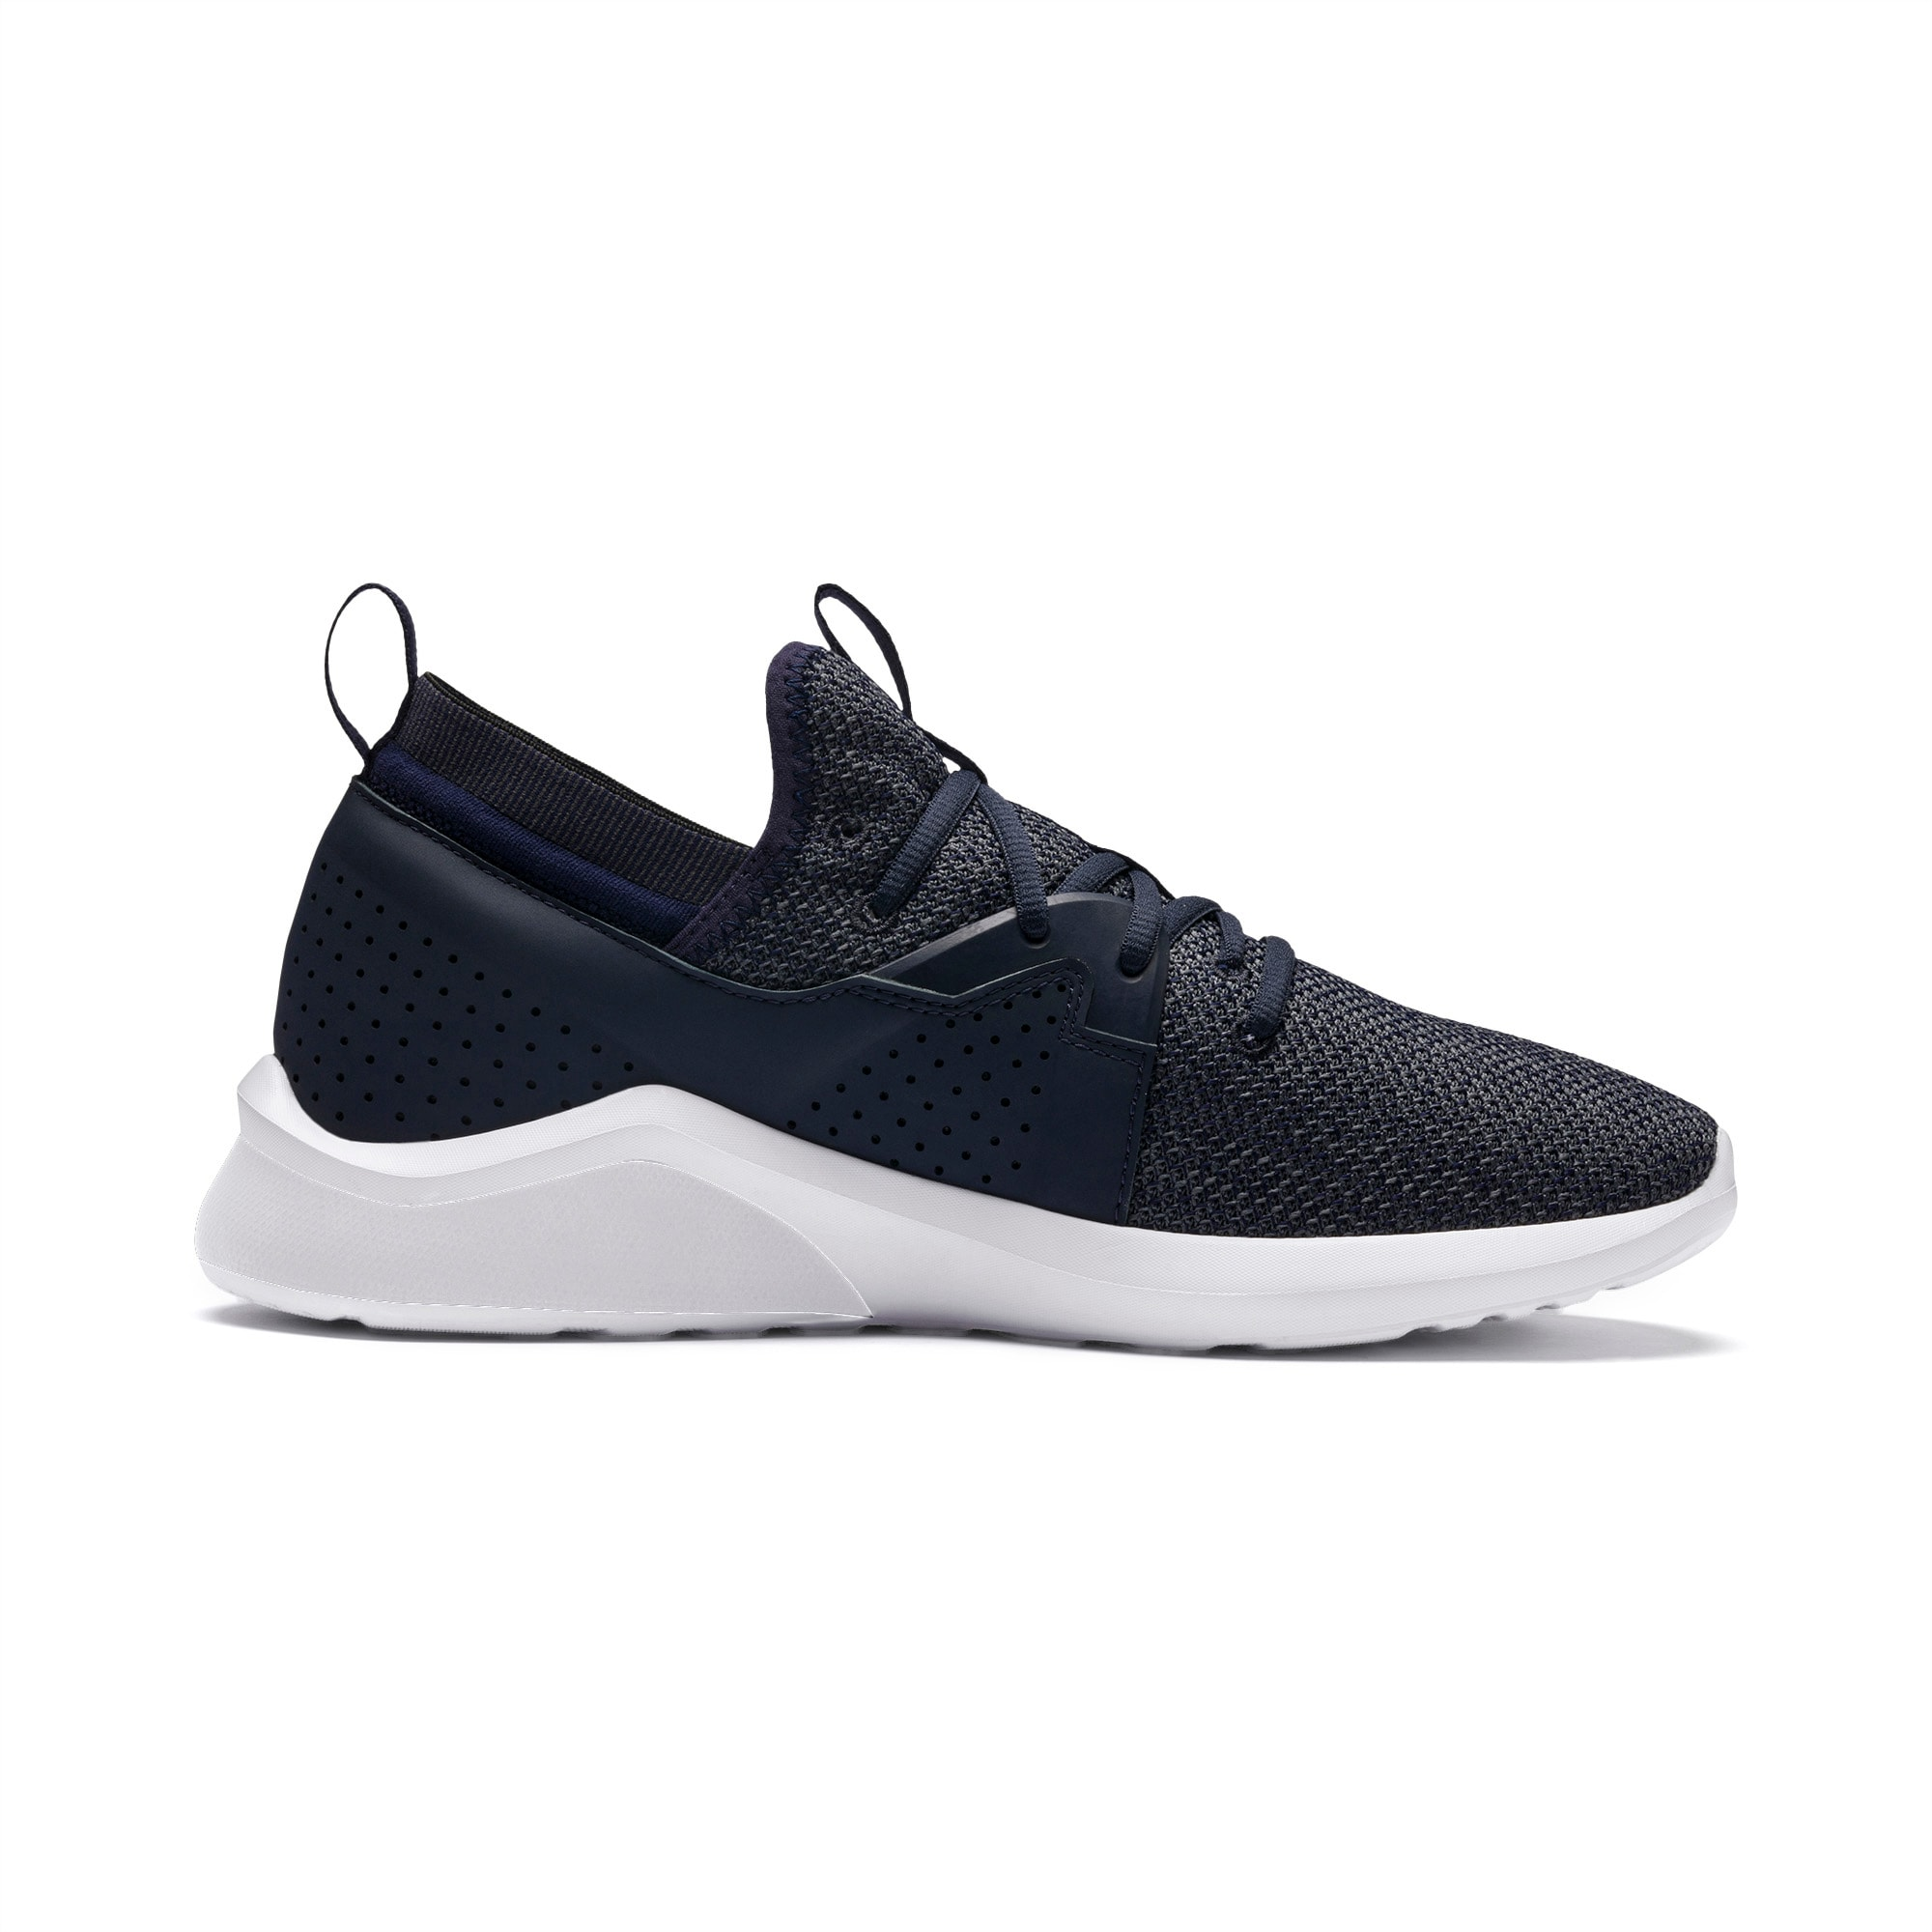 Emergence Men's Sneakers